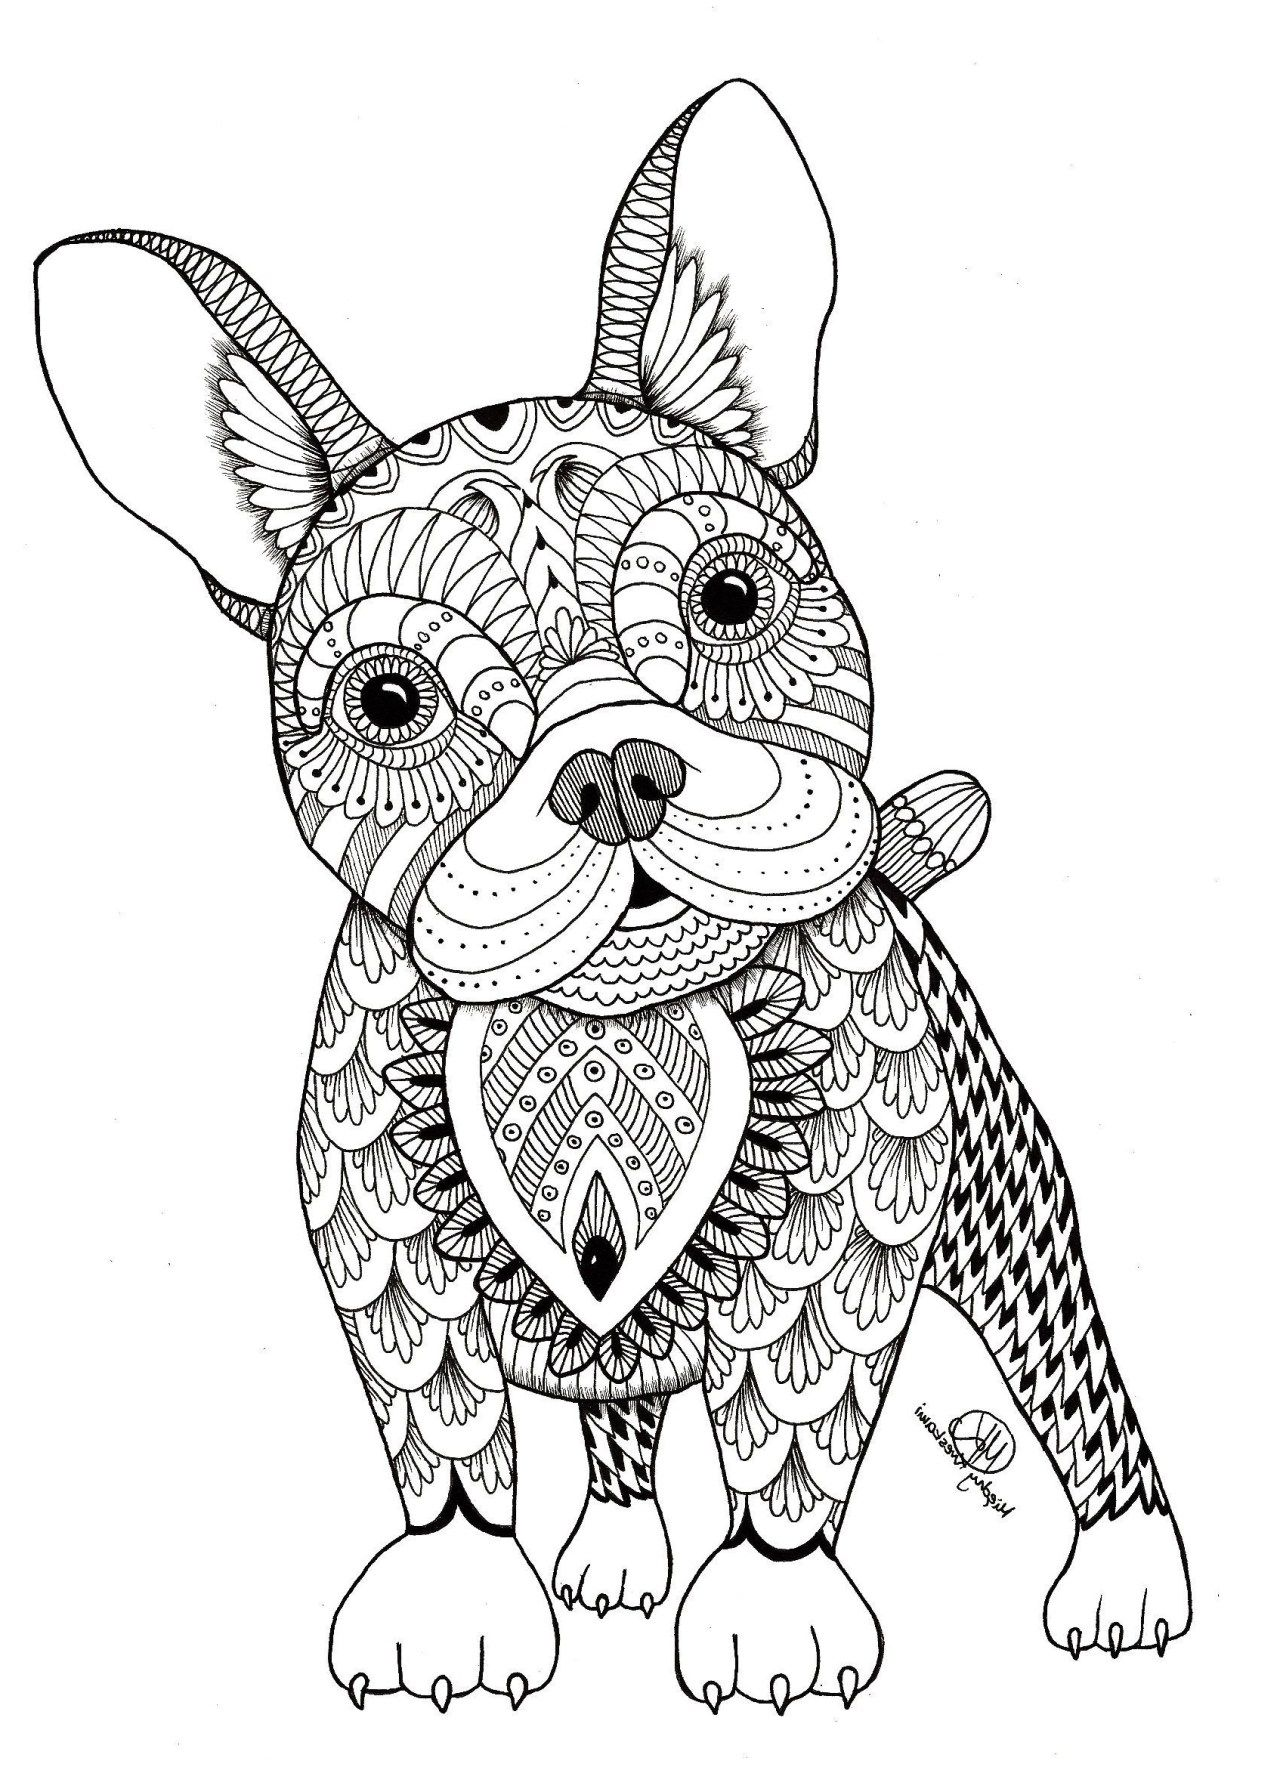 25 inspiration image of animal mandala coloring pages